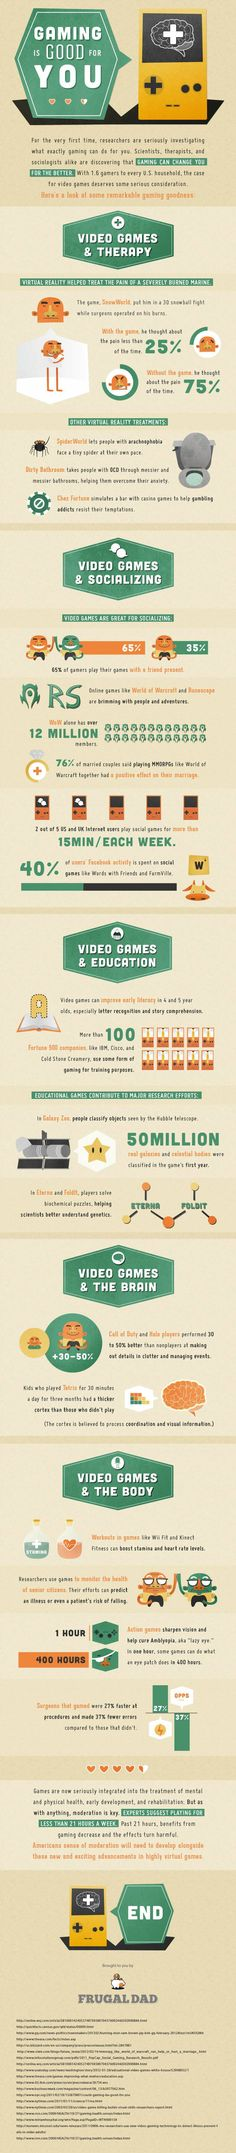 Why Gaming is Good For You #infographic